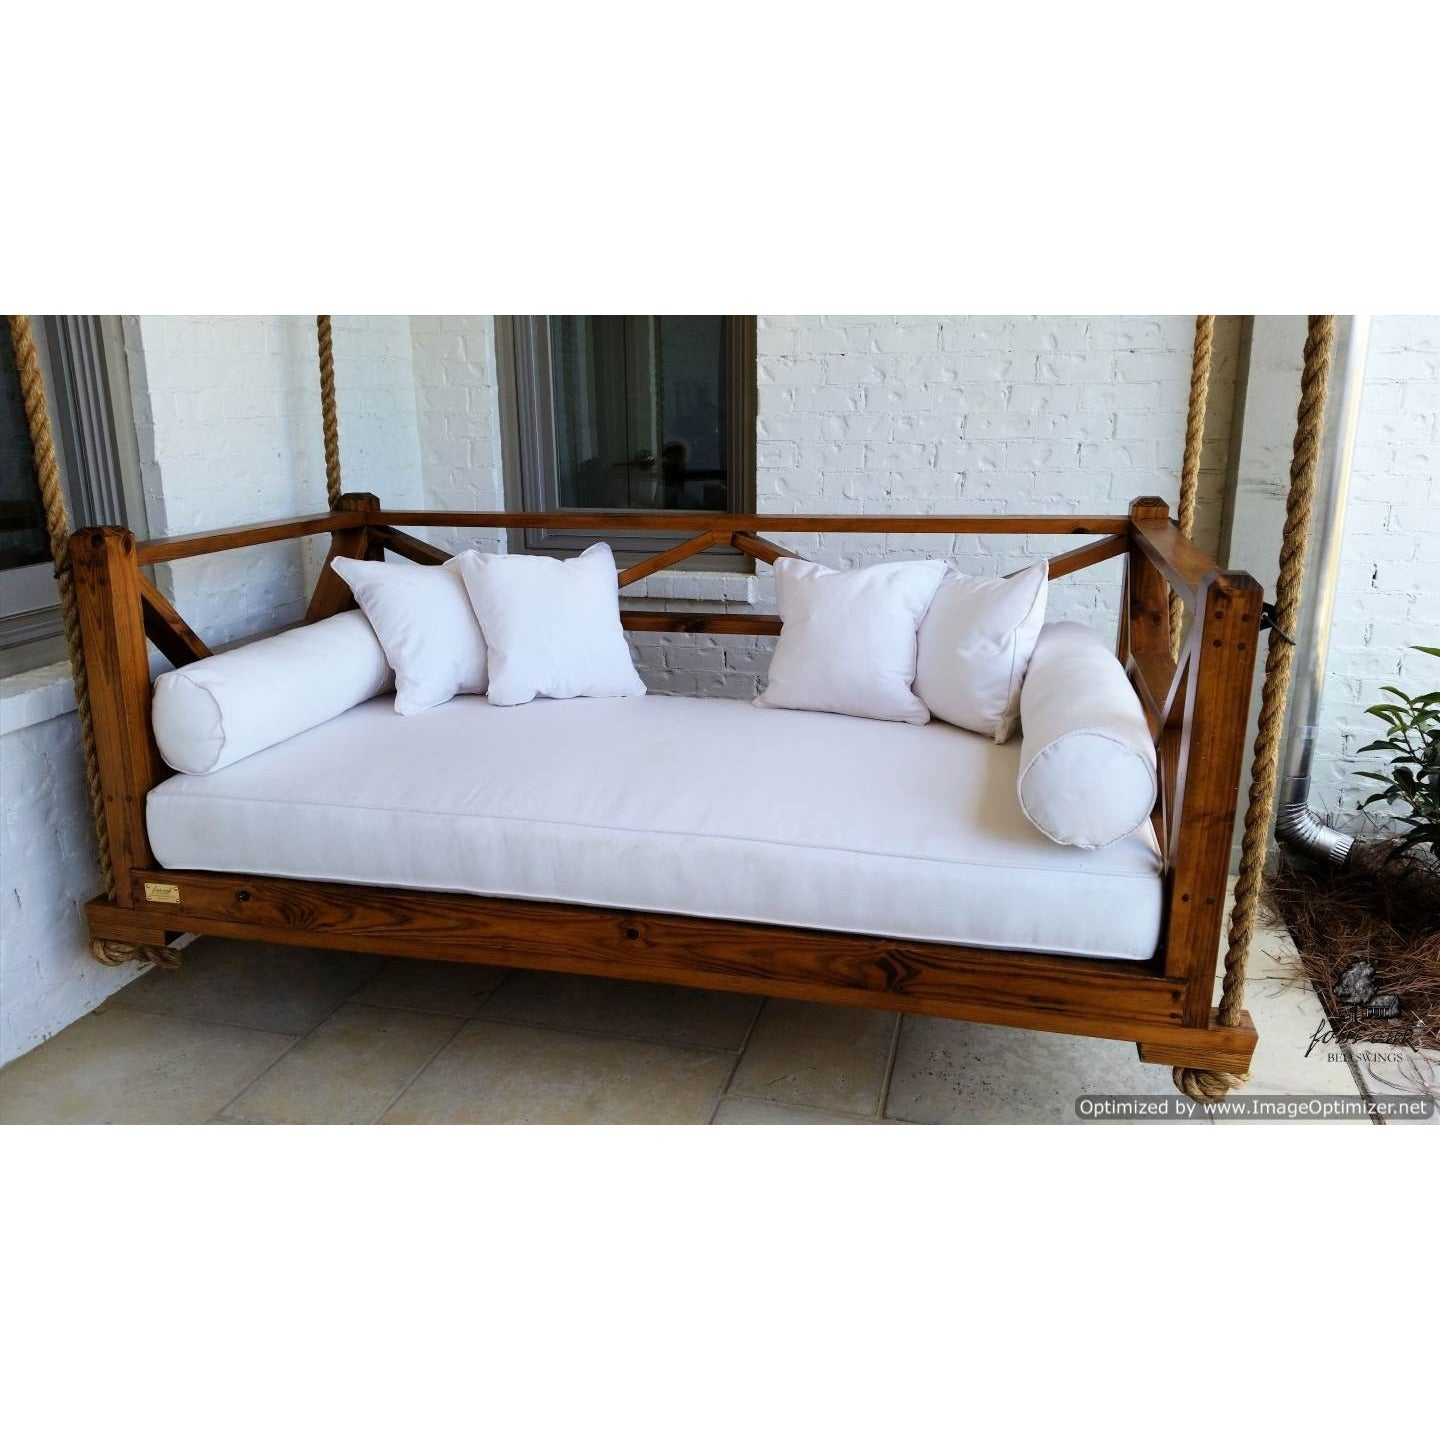 ... Seaside Bed Swing Twin Size Hanging Porch Bed With Canvas Natural  Cushions And Stain With Early ...